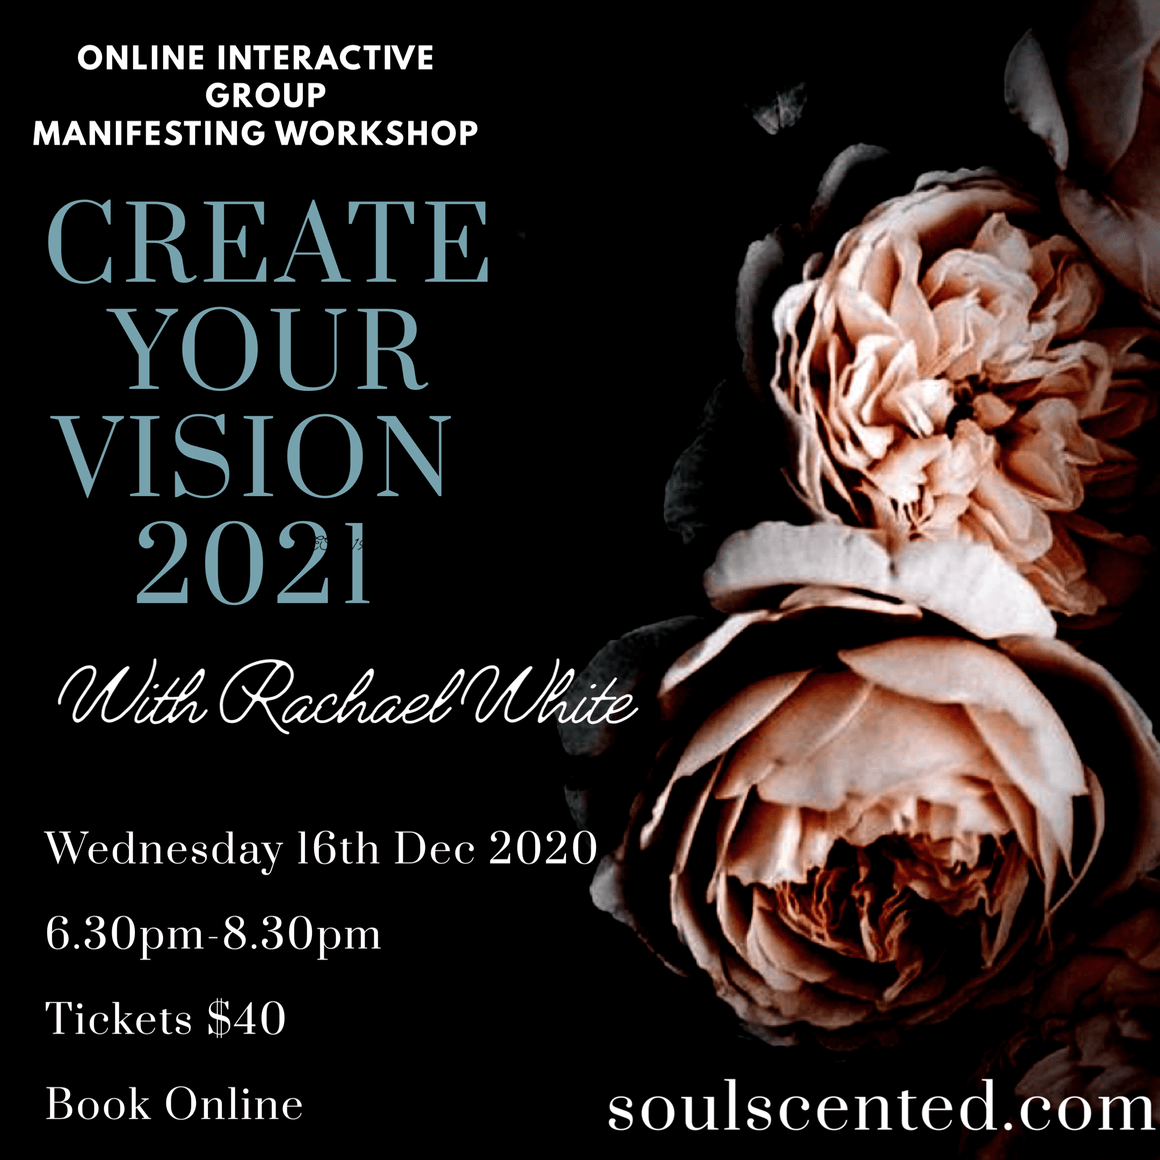 Soulscented-Apothecary, Day Spa, Salon, Perfumery & College Events Create your Vision 2021